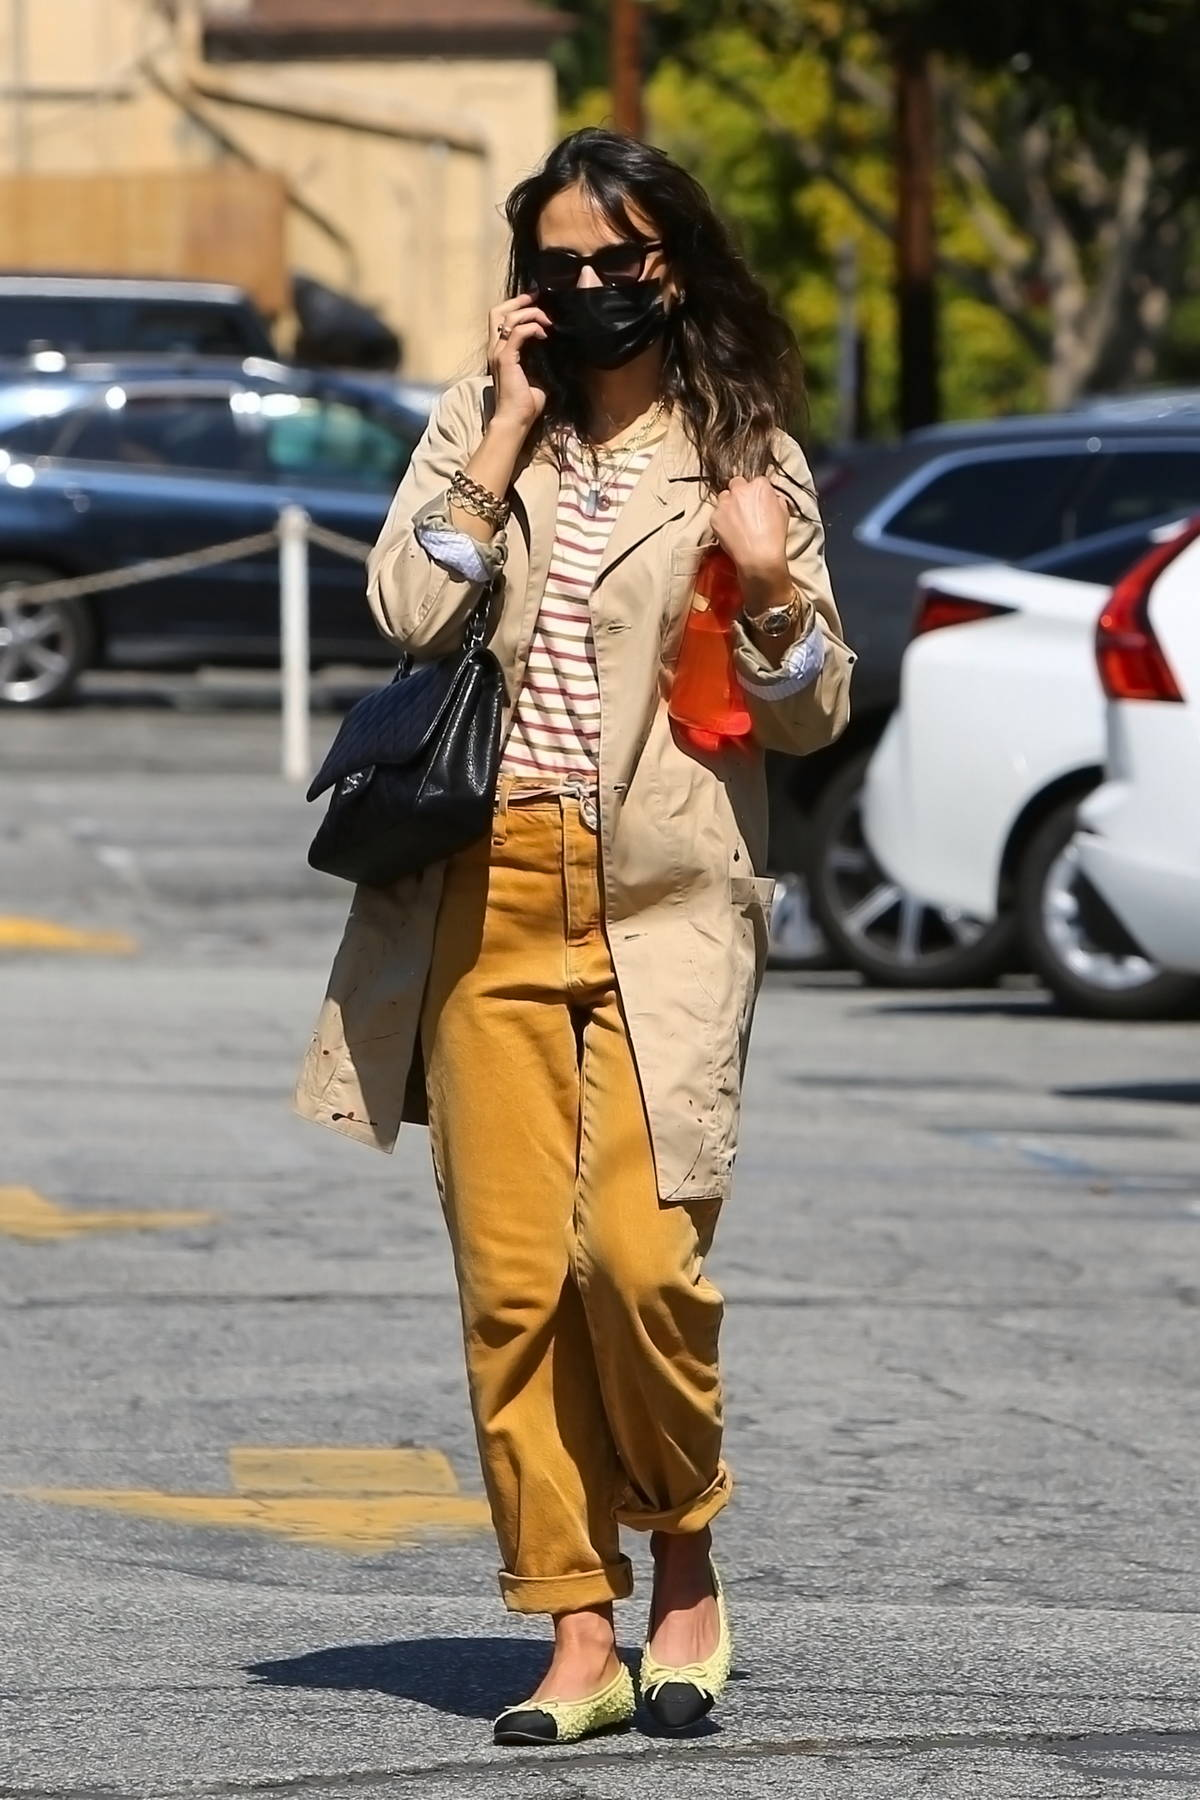 Jordana Brewster seen wearing yellow jeans while stopping by the Country Mart in Brentwood, California